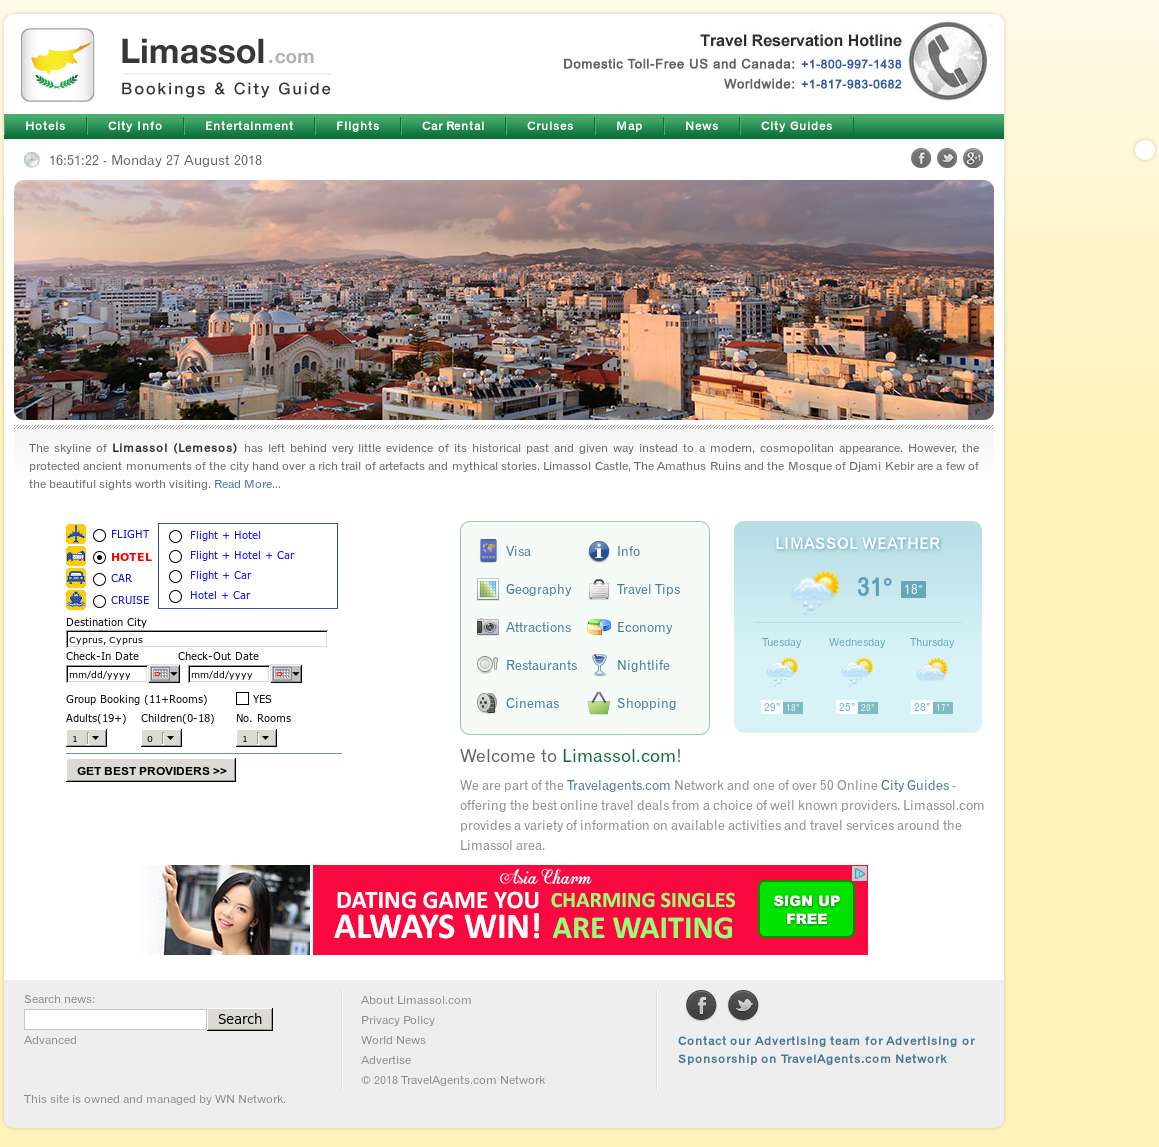 Limassol Competitors, Revenue and Employees - Owler Company